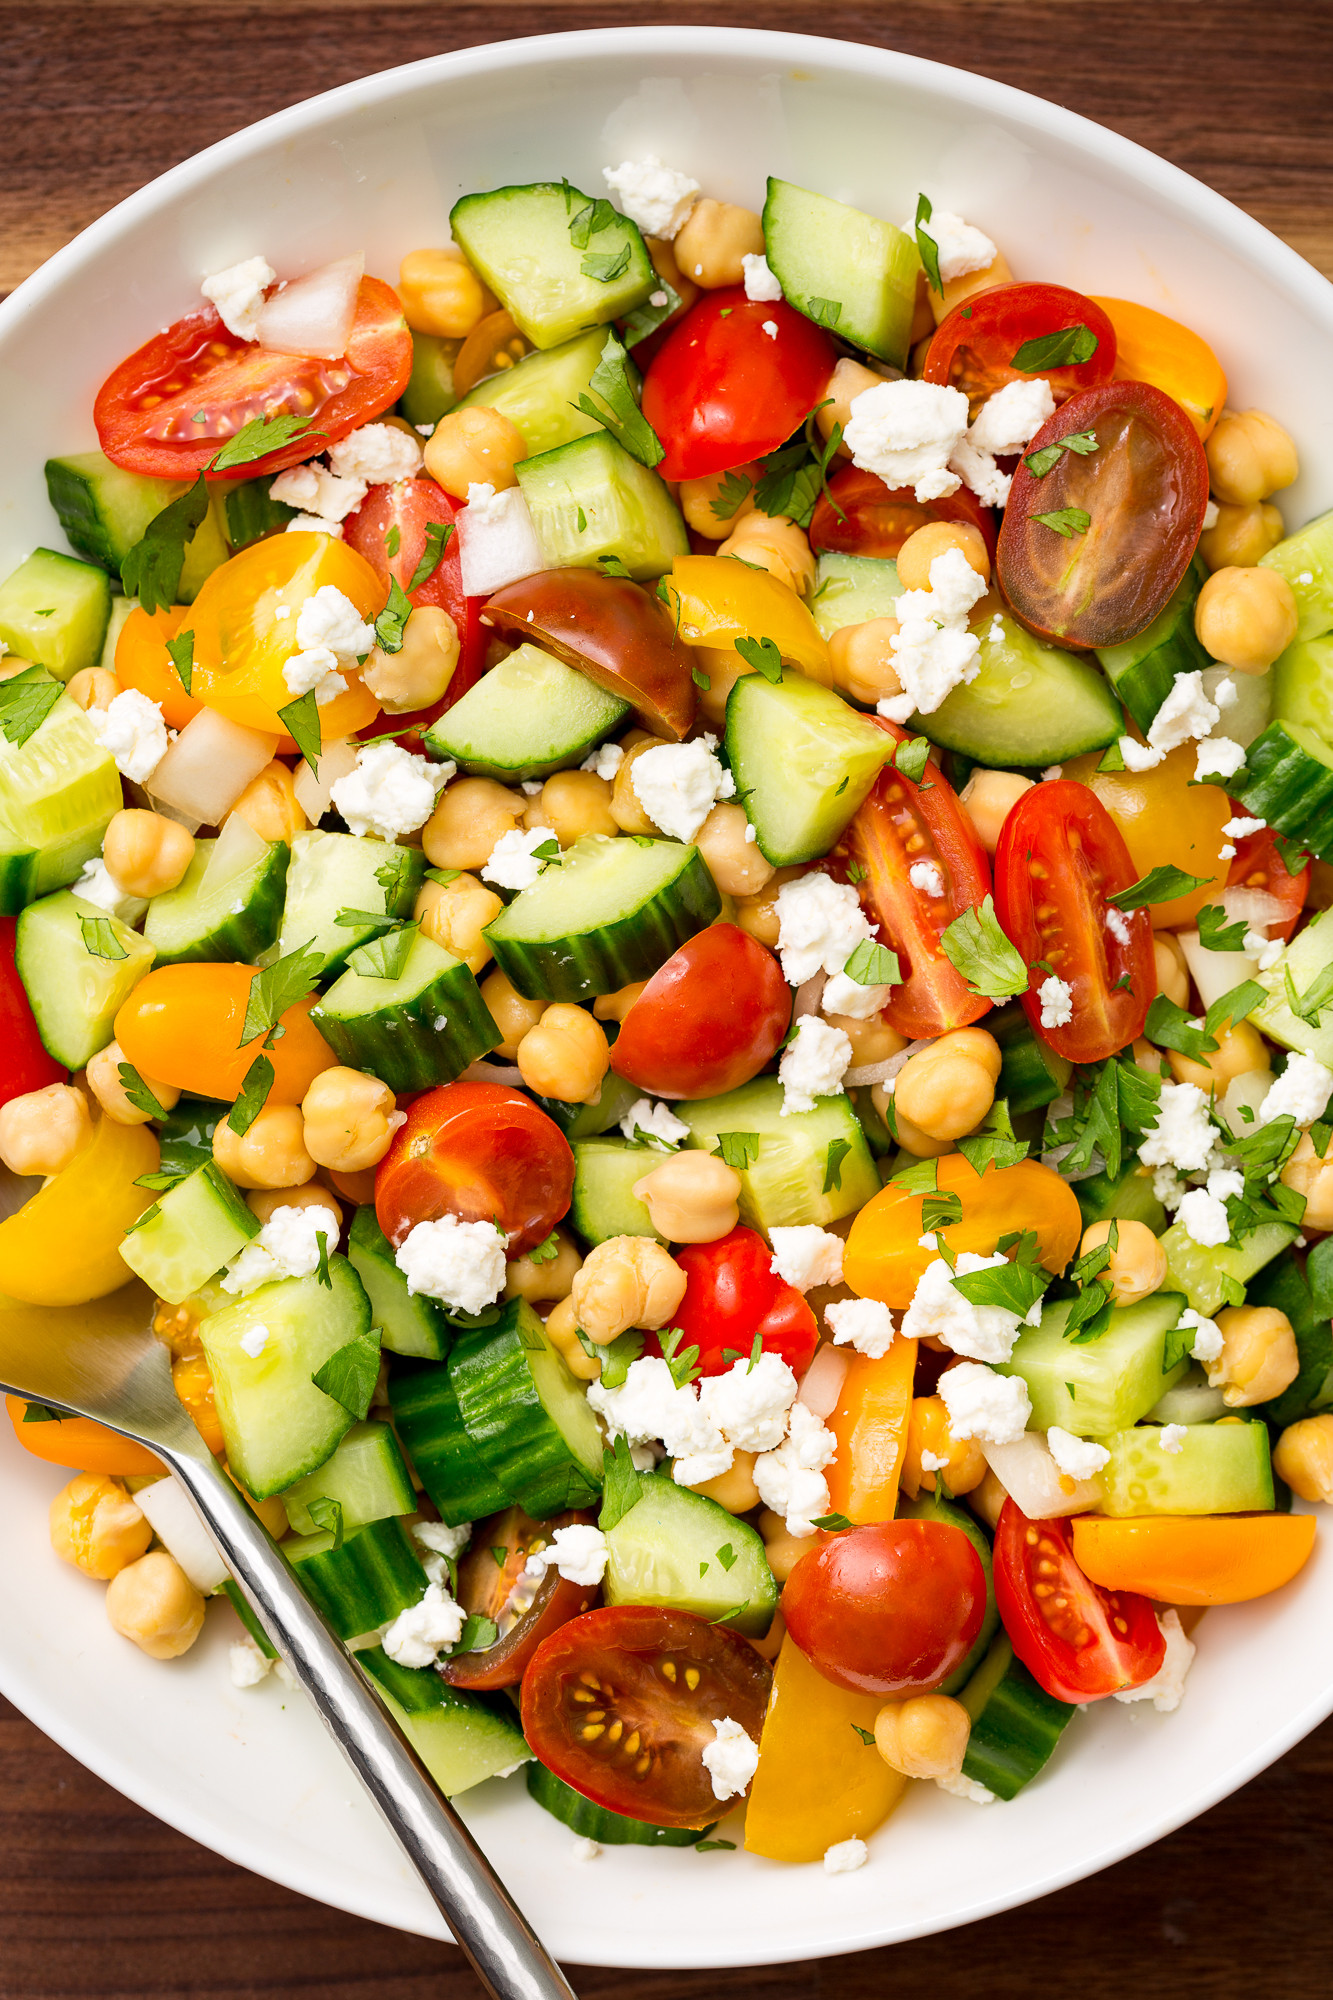 Summertime Side Dishes  The 50 Most Delish Easy Summer Side Dishes—Delish